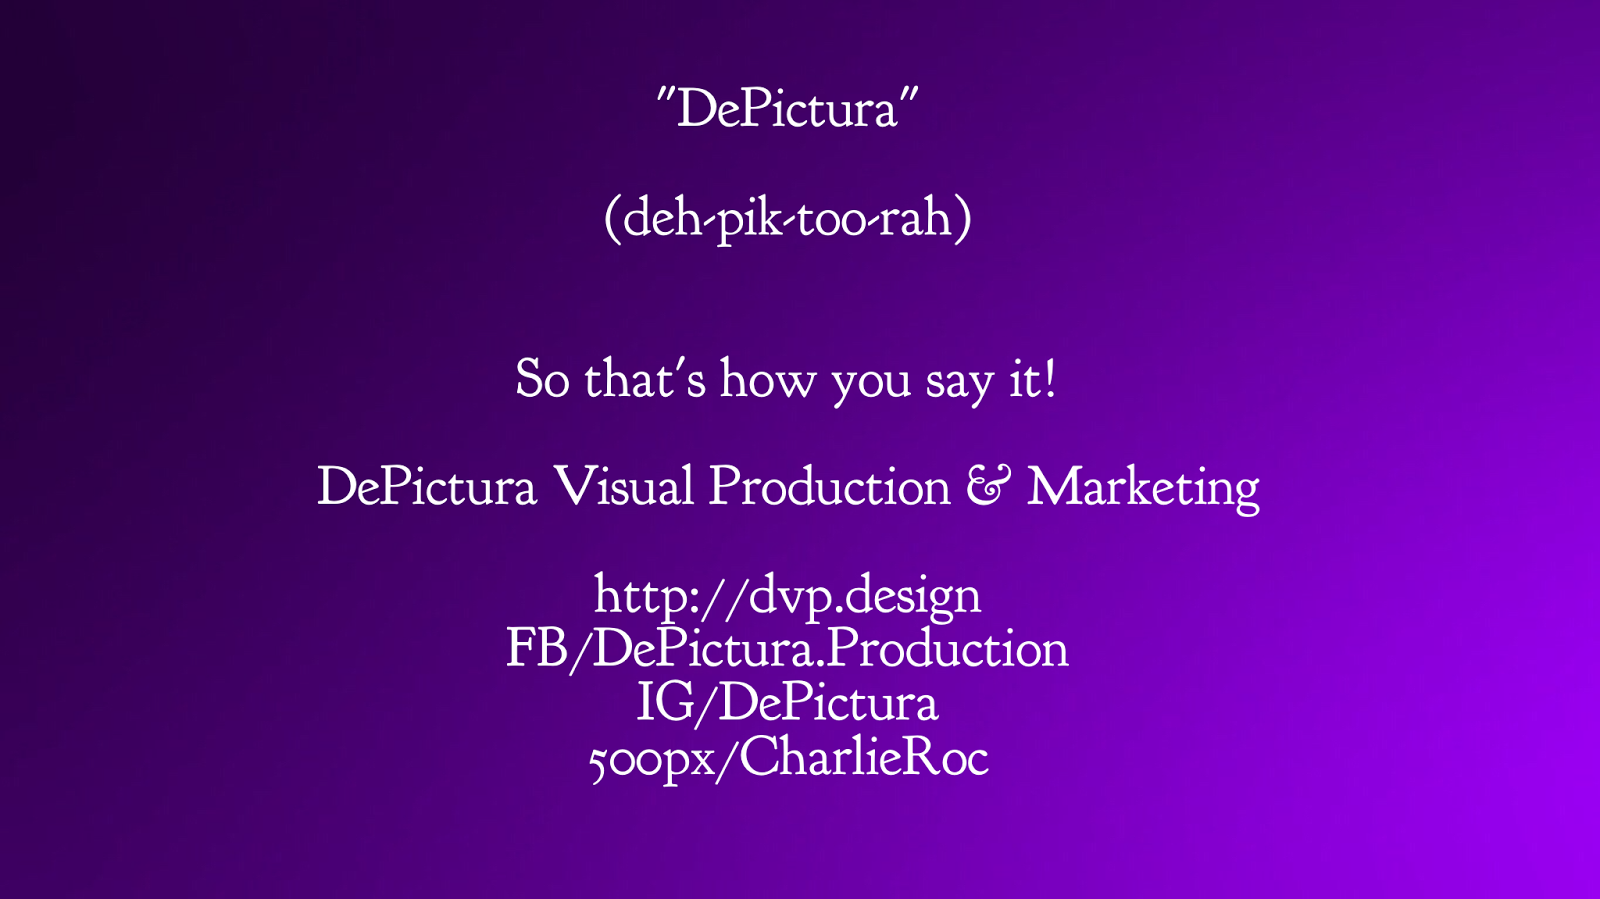 Depictura Visual Production And Marketing